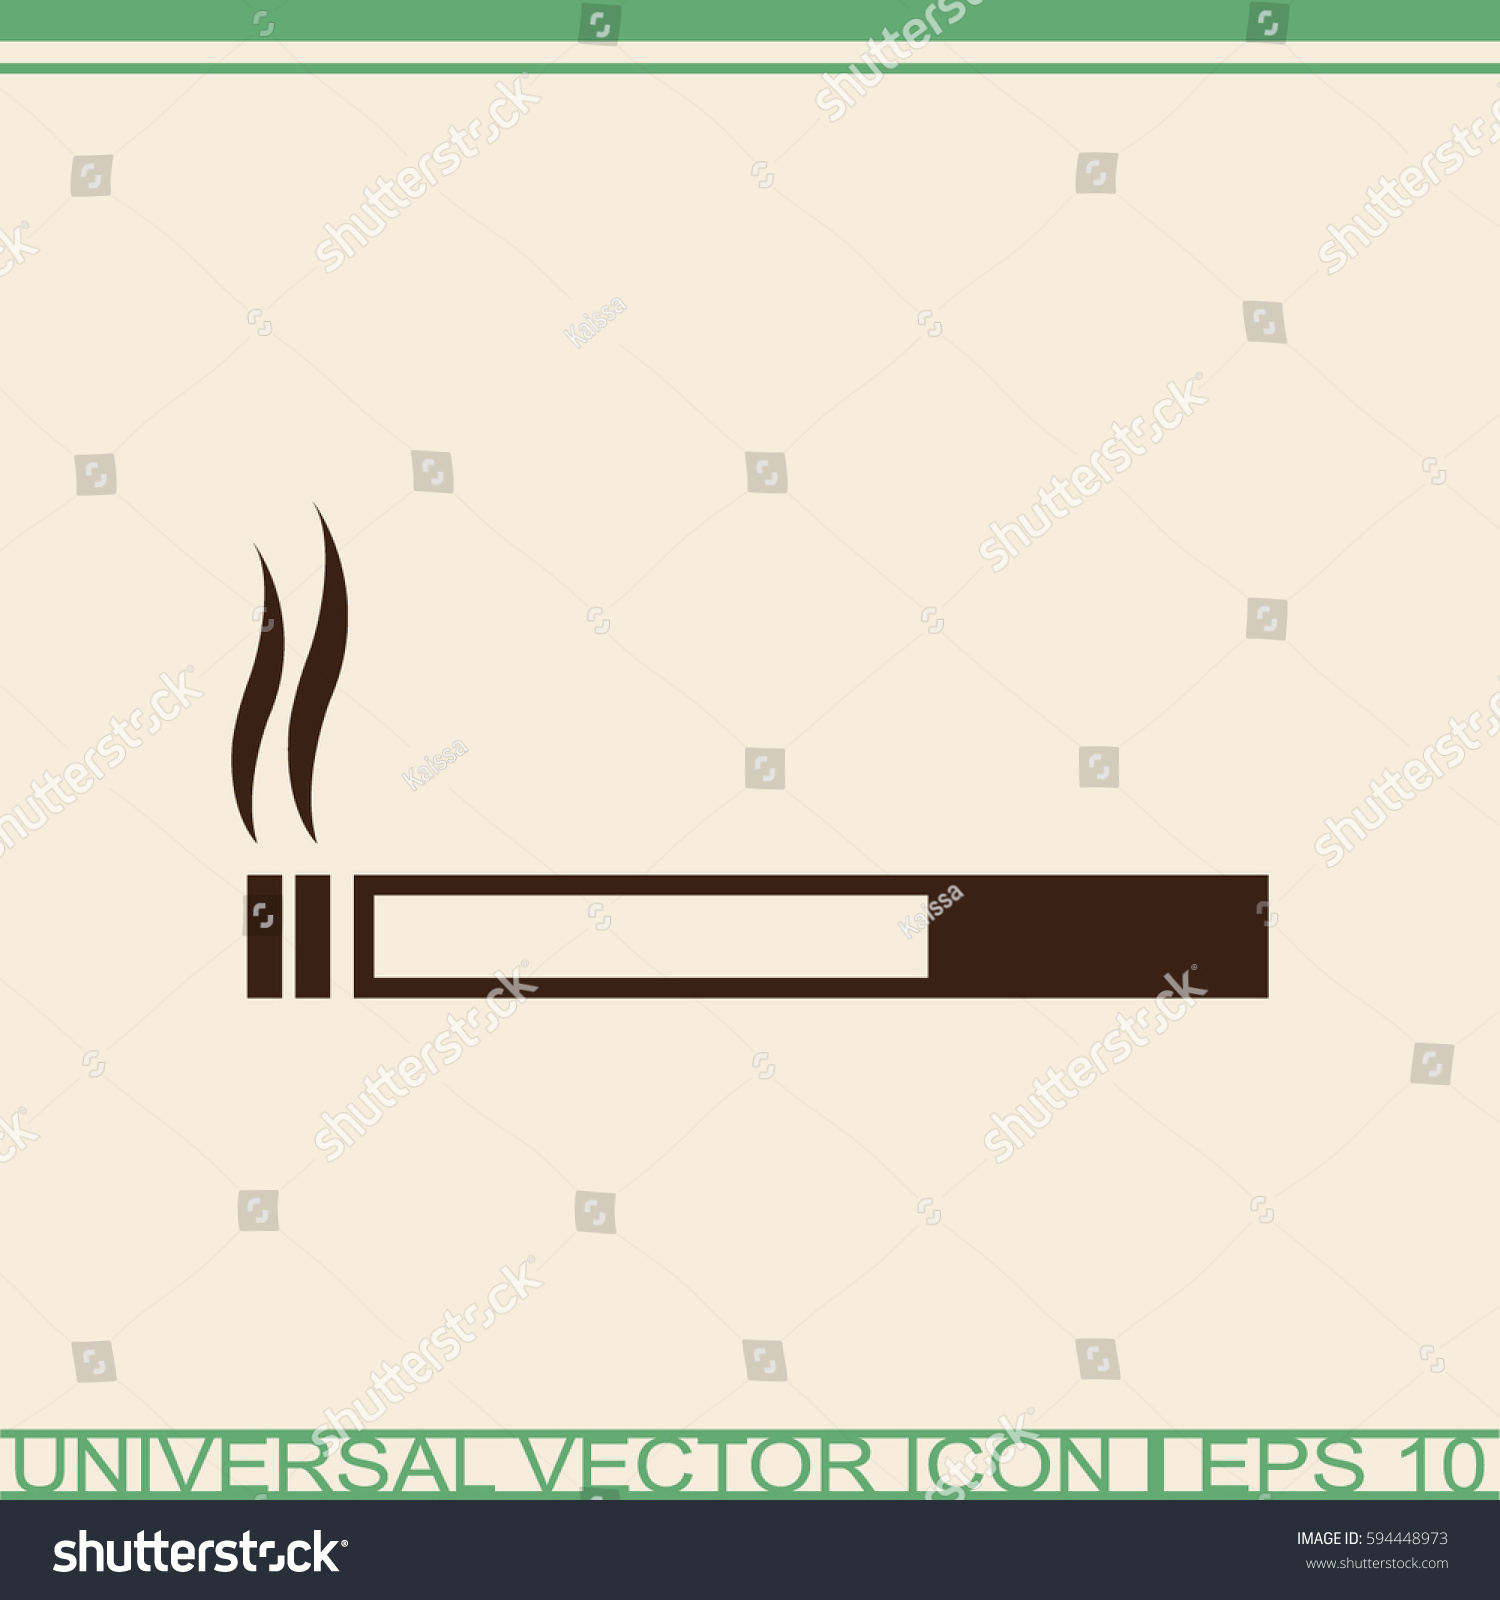 Cigarette vector icon smoking symbol stock vector 594448973 smoking symbol buycottarizona Images